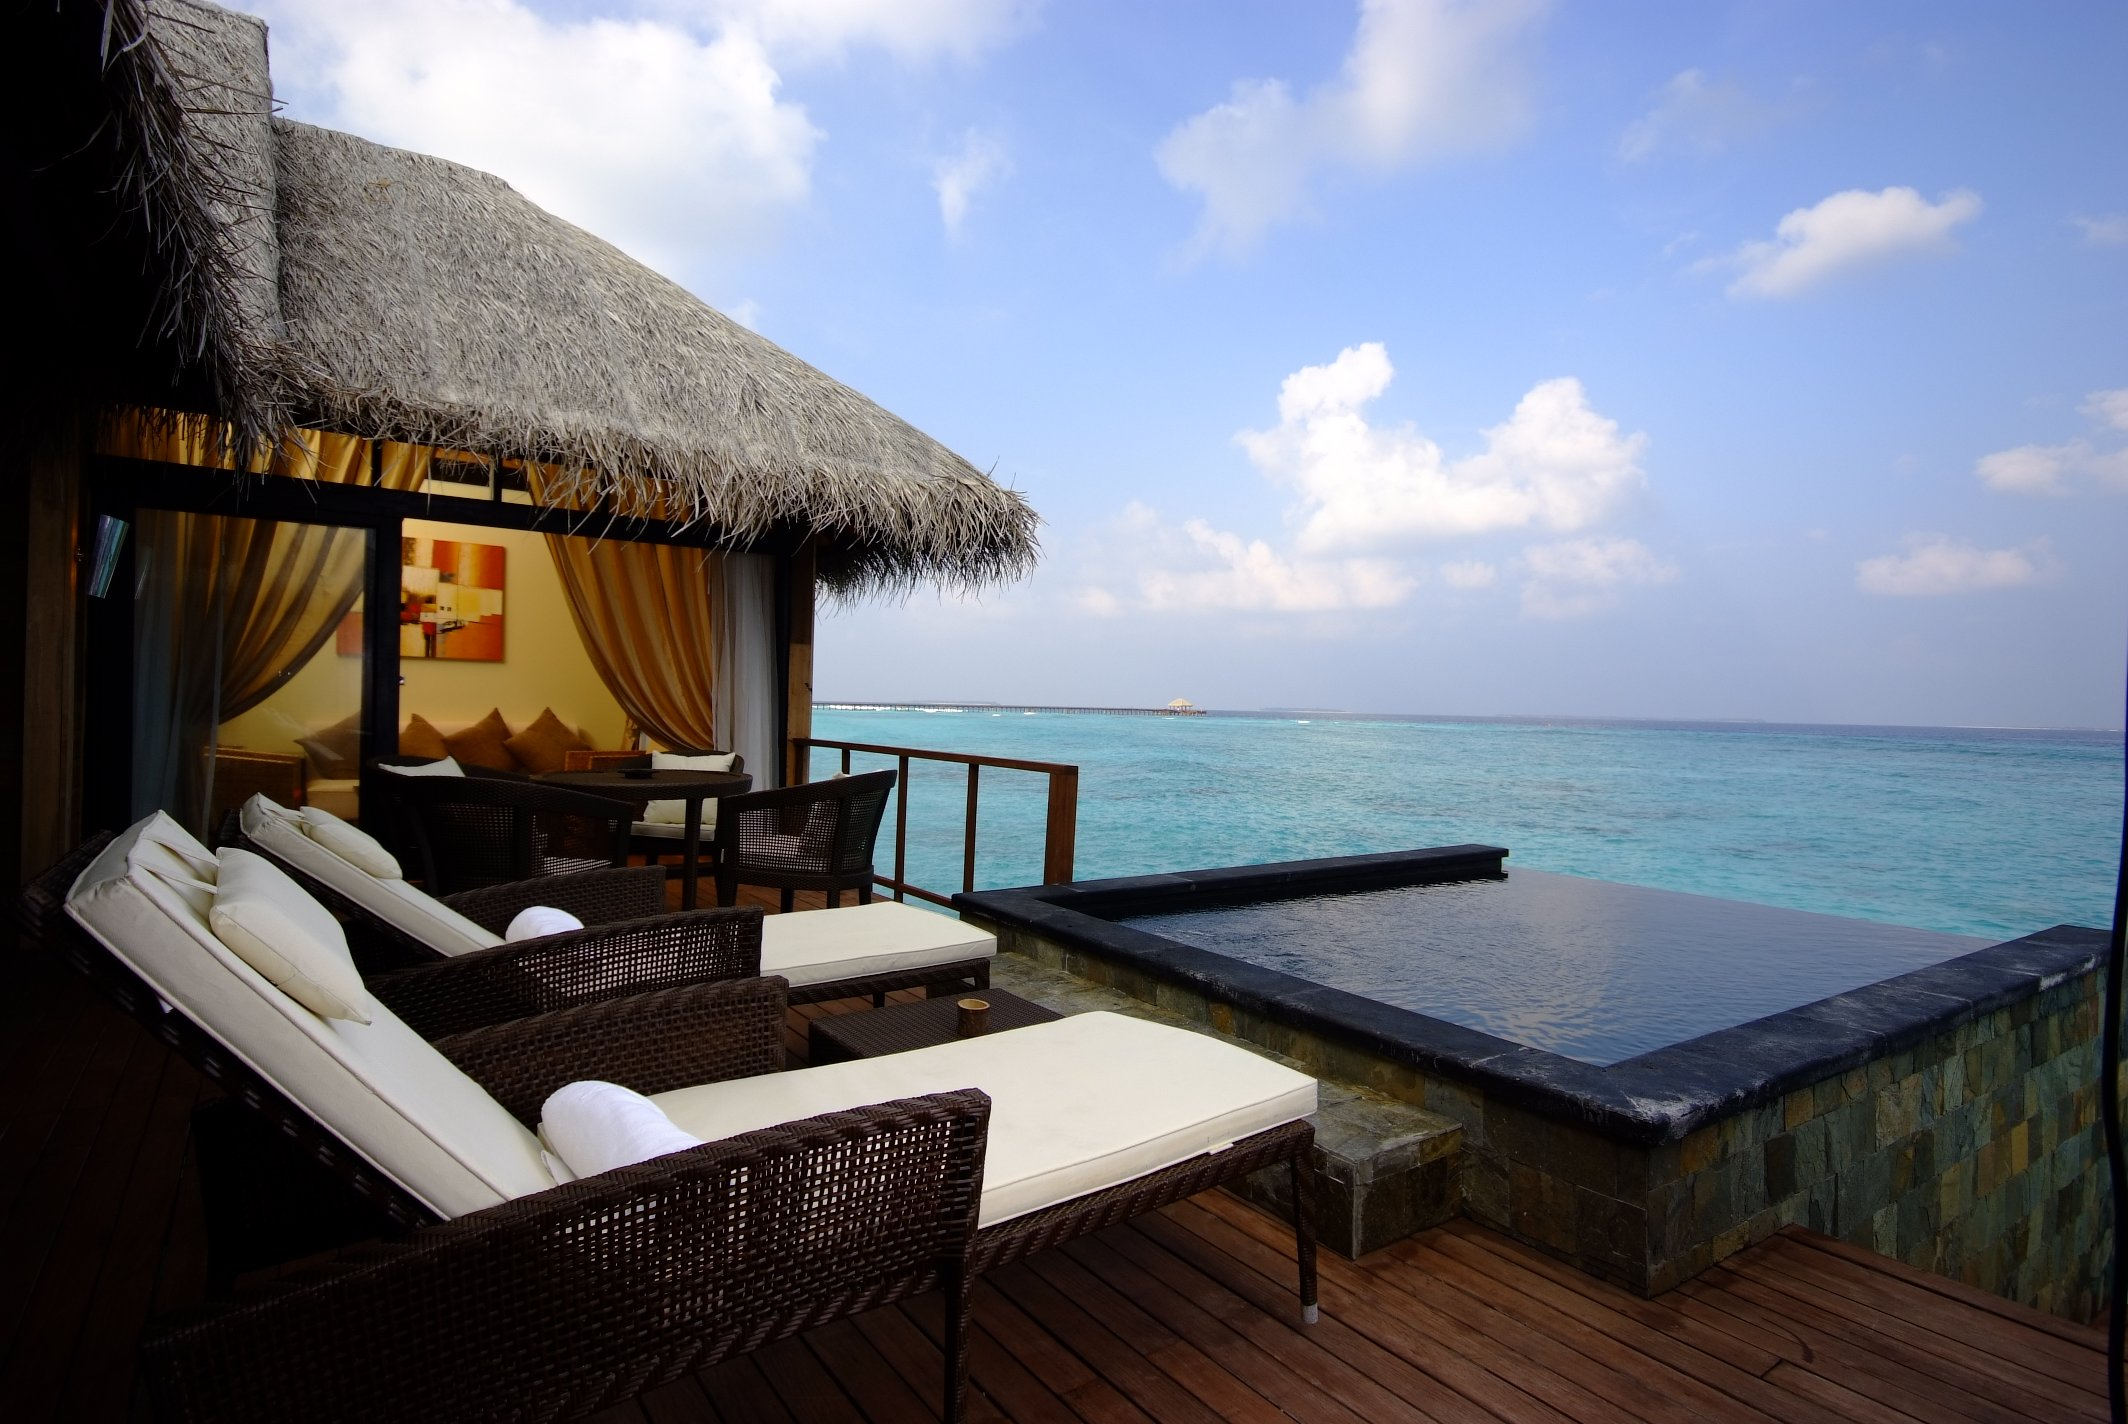 Iruveli A Serene Beach House in Maldives | Architecture ...